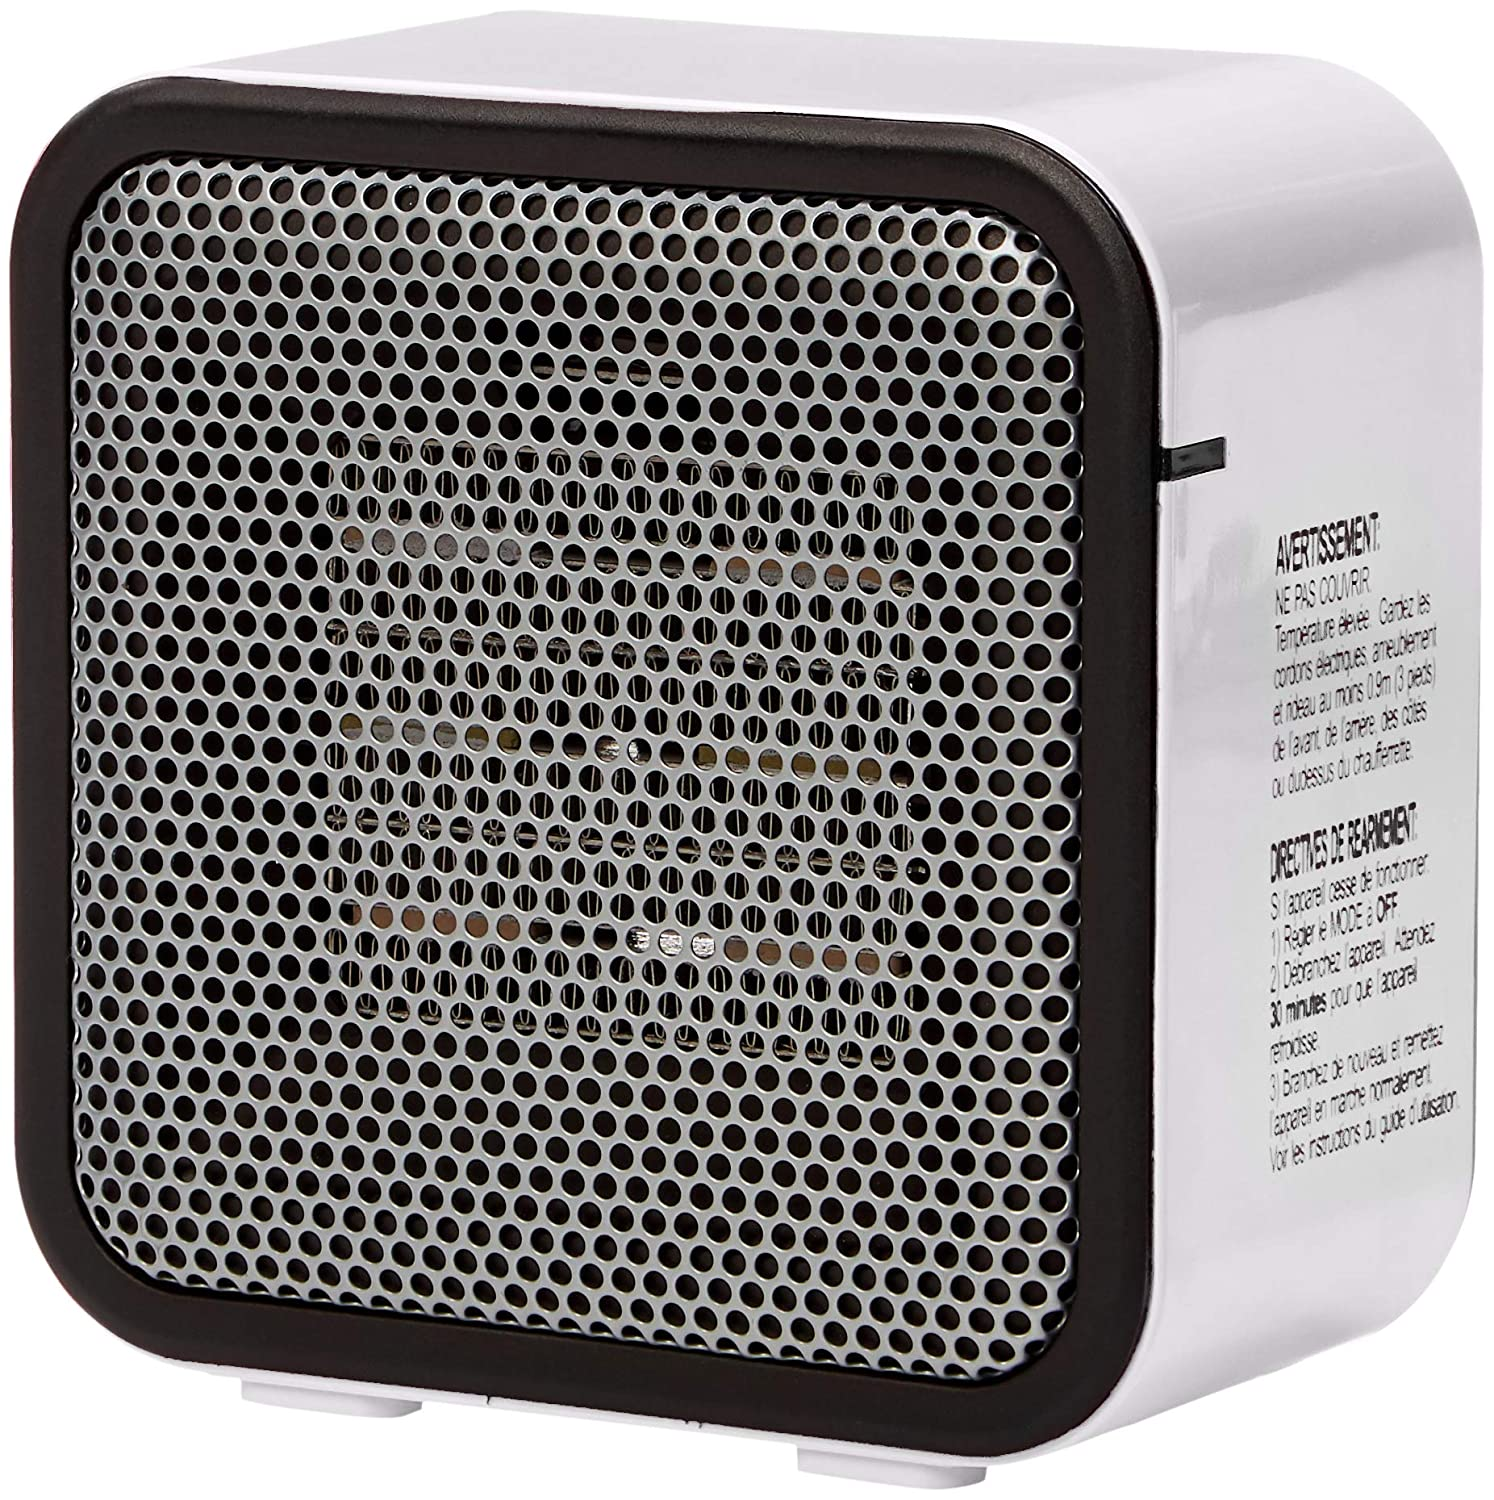 AmazonBasics 500-Watt Ceramic Personal Heater - White